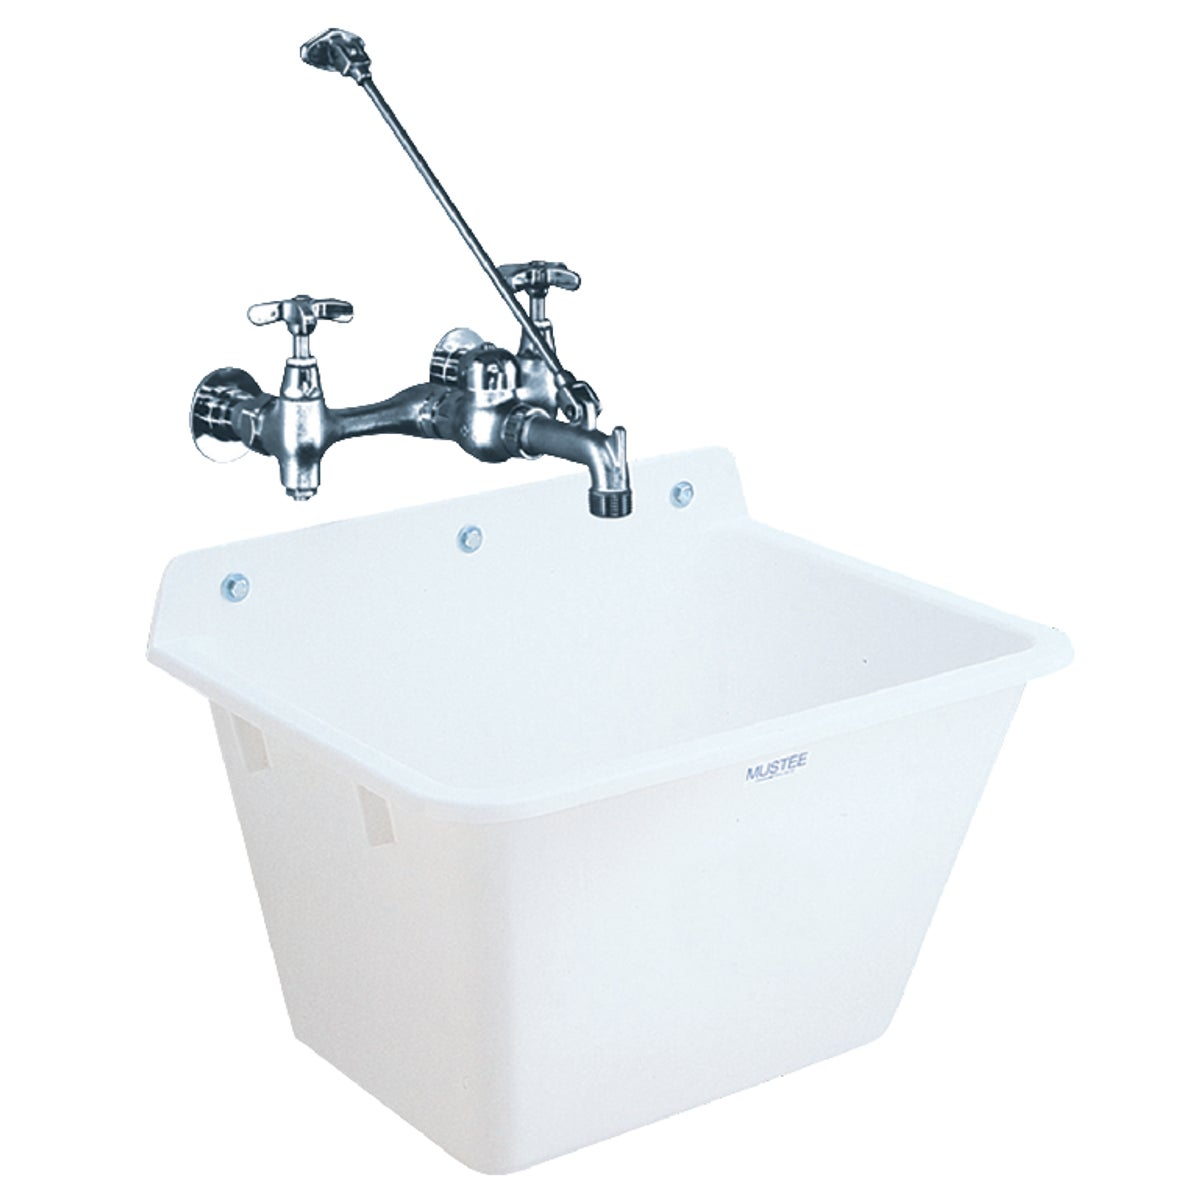 WALL MOUNT SINK - 16K by E L Mustee